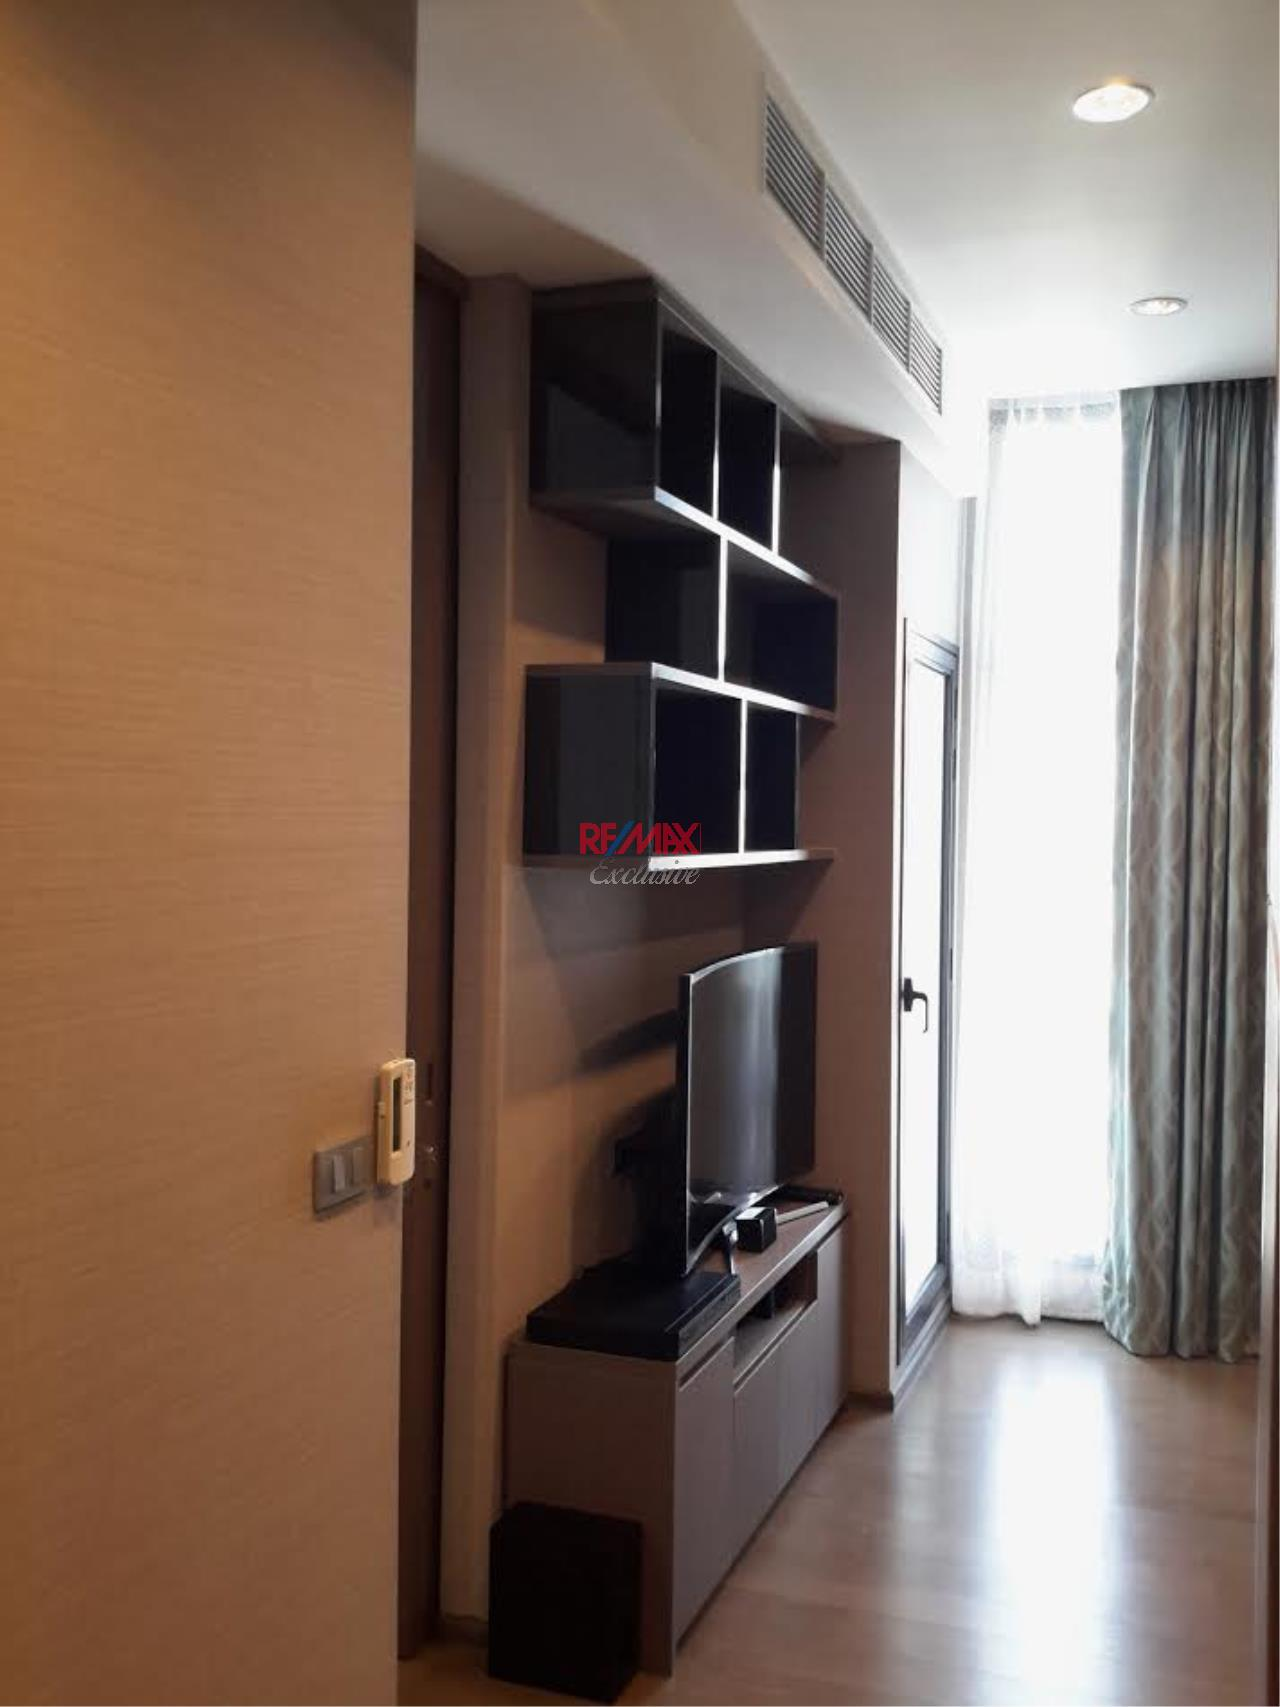 RE/MAX Exclusive Agency's The Diplomat Sathorn 1 Bedroom for rent 40,000 THB 7